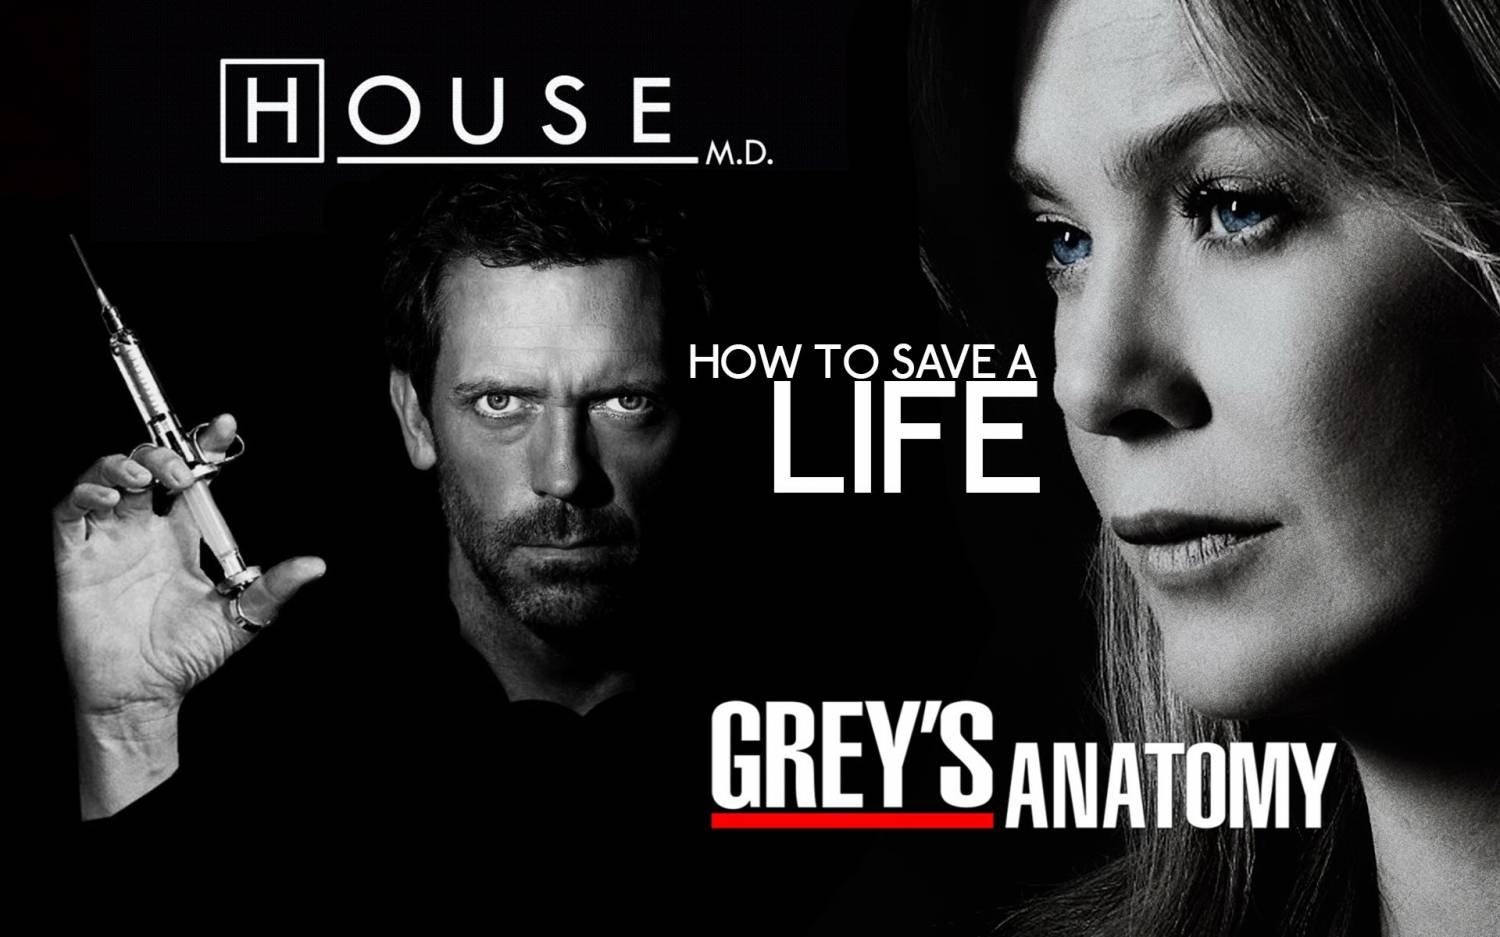 Dr House Vs Grey's Anatomy